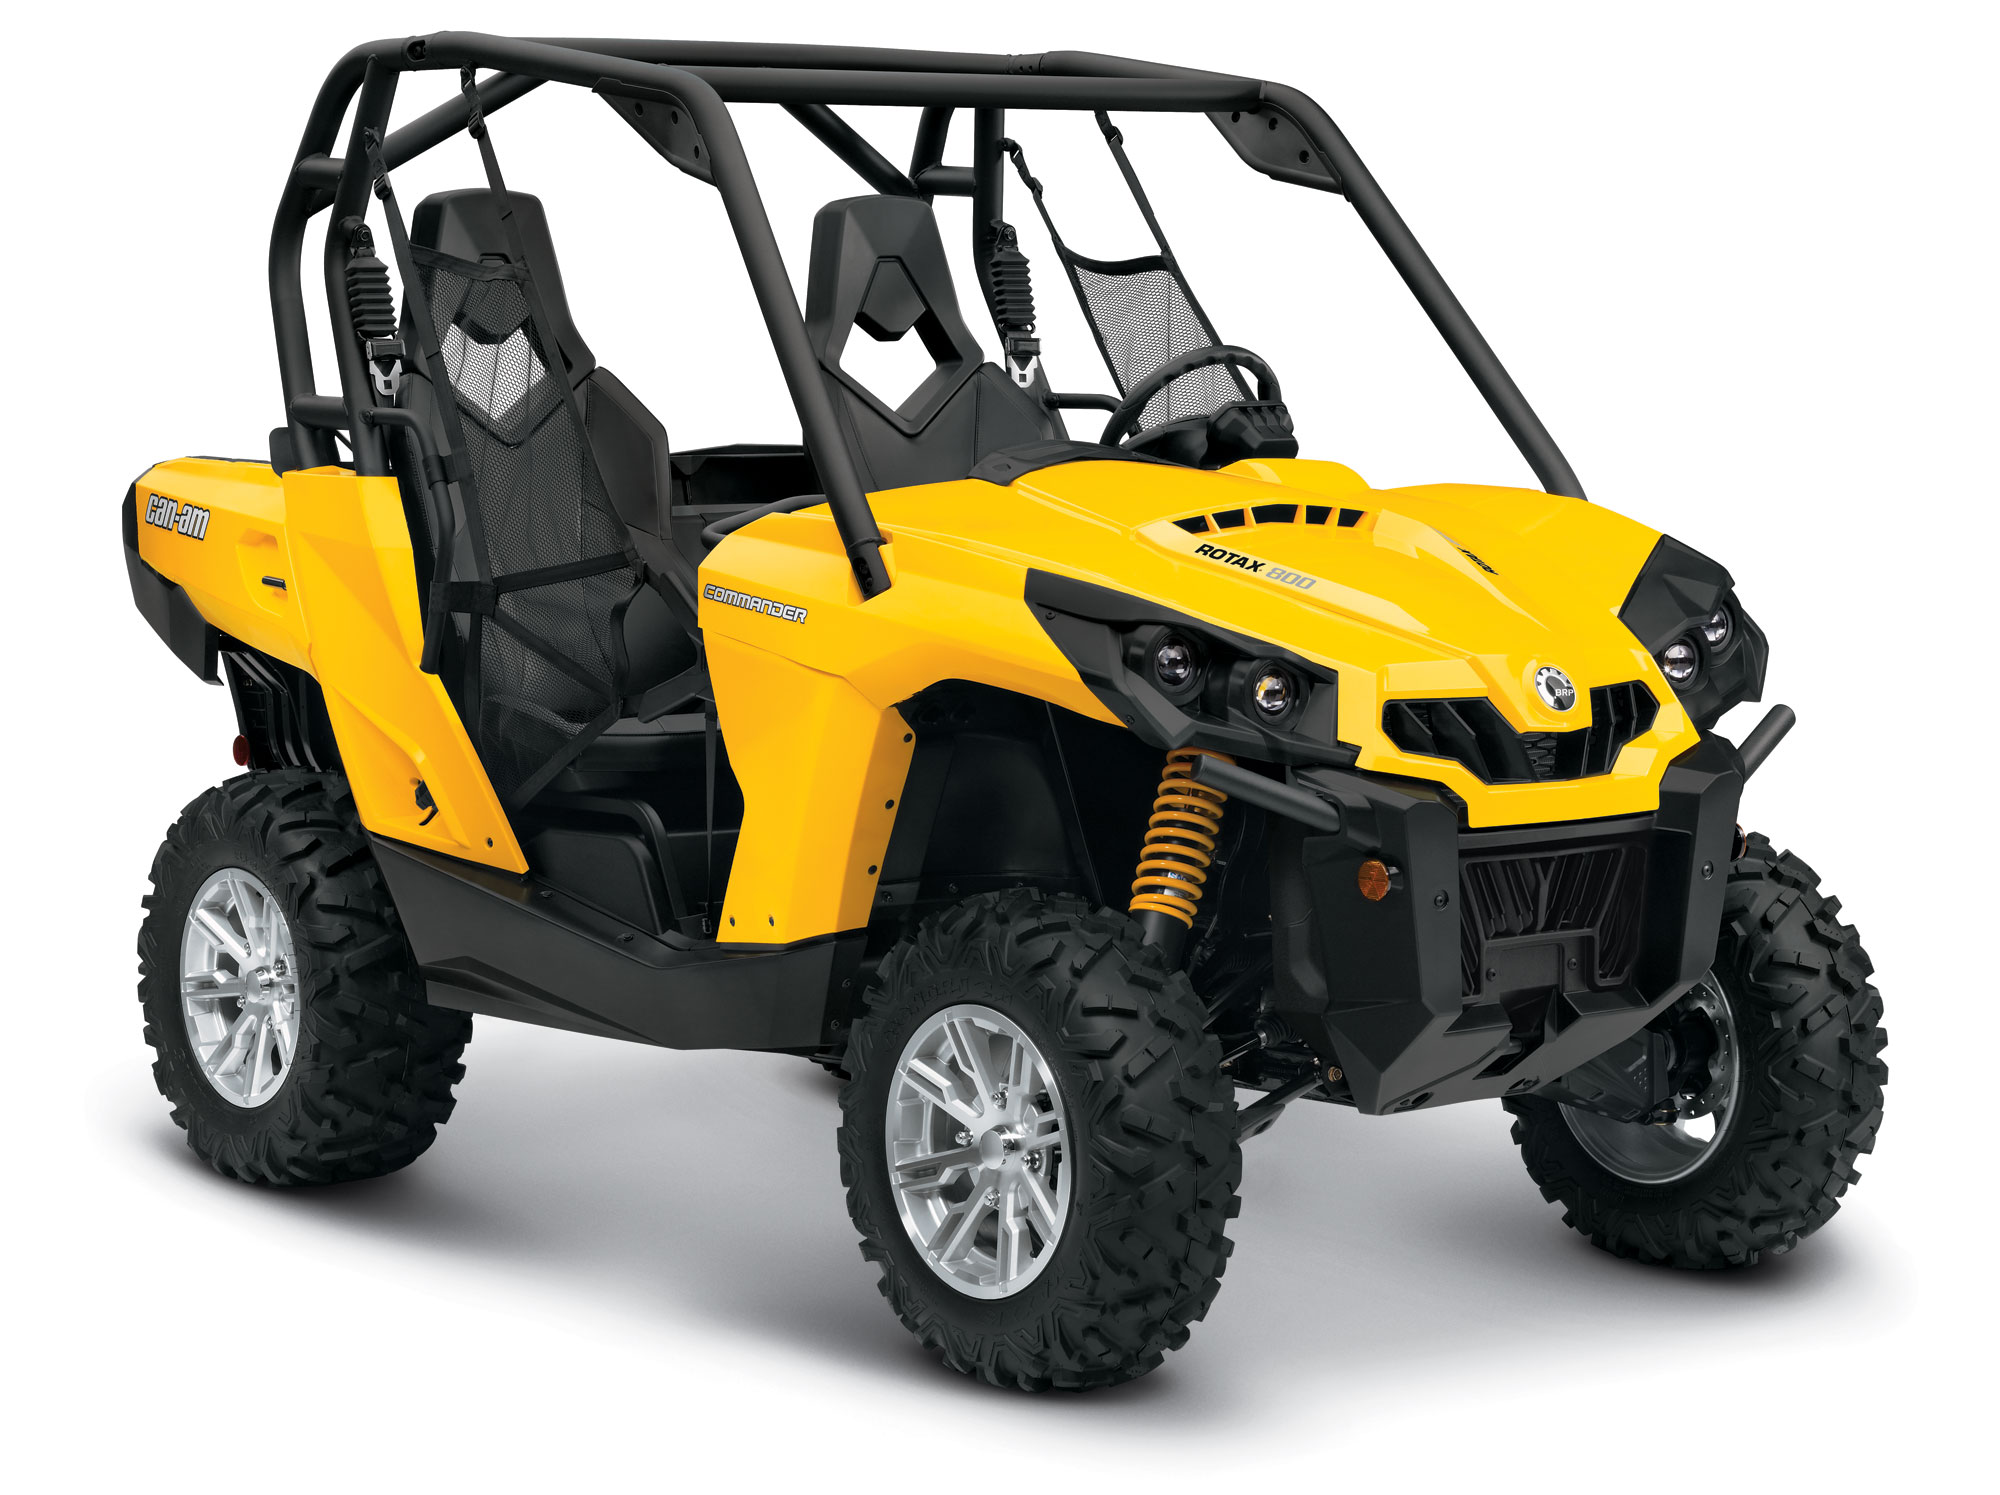 2013 Can-Am Commander 800 DPS Review